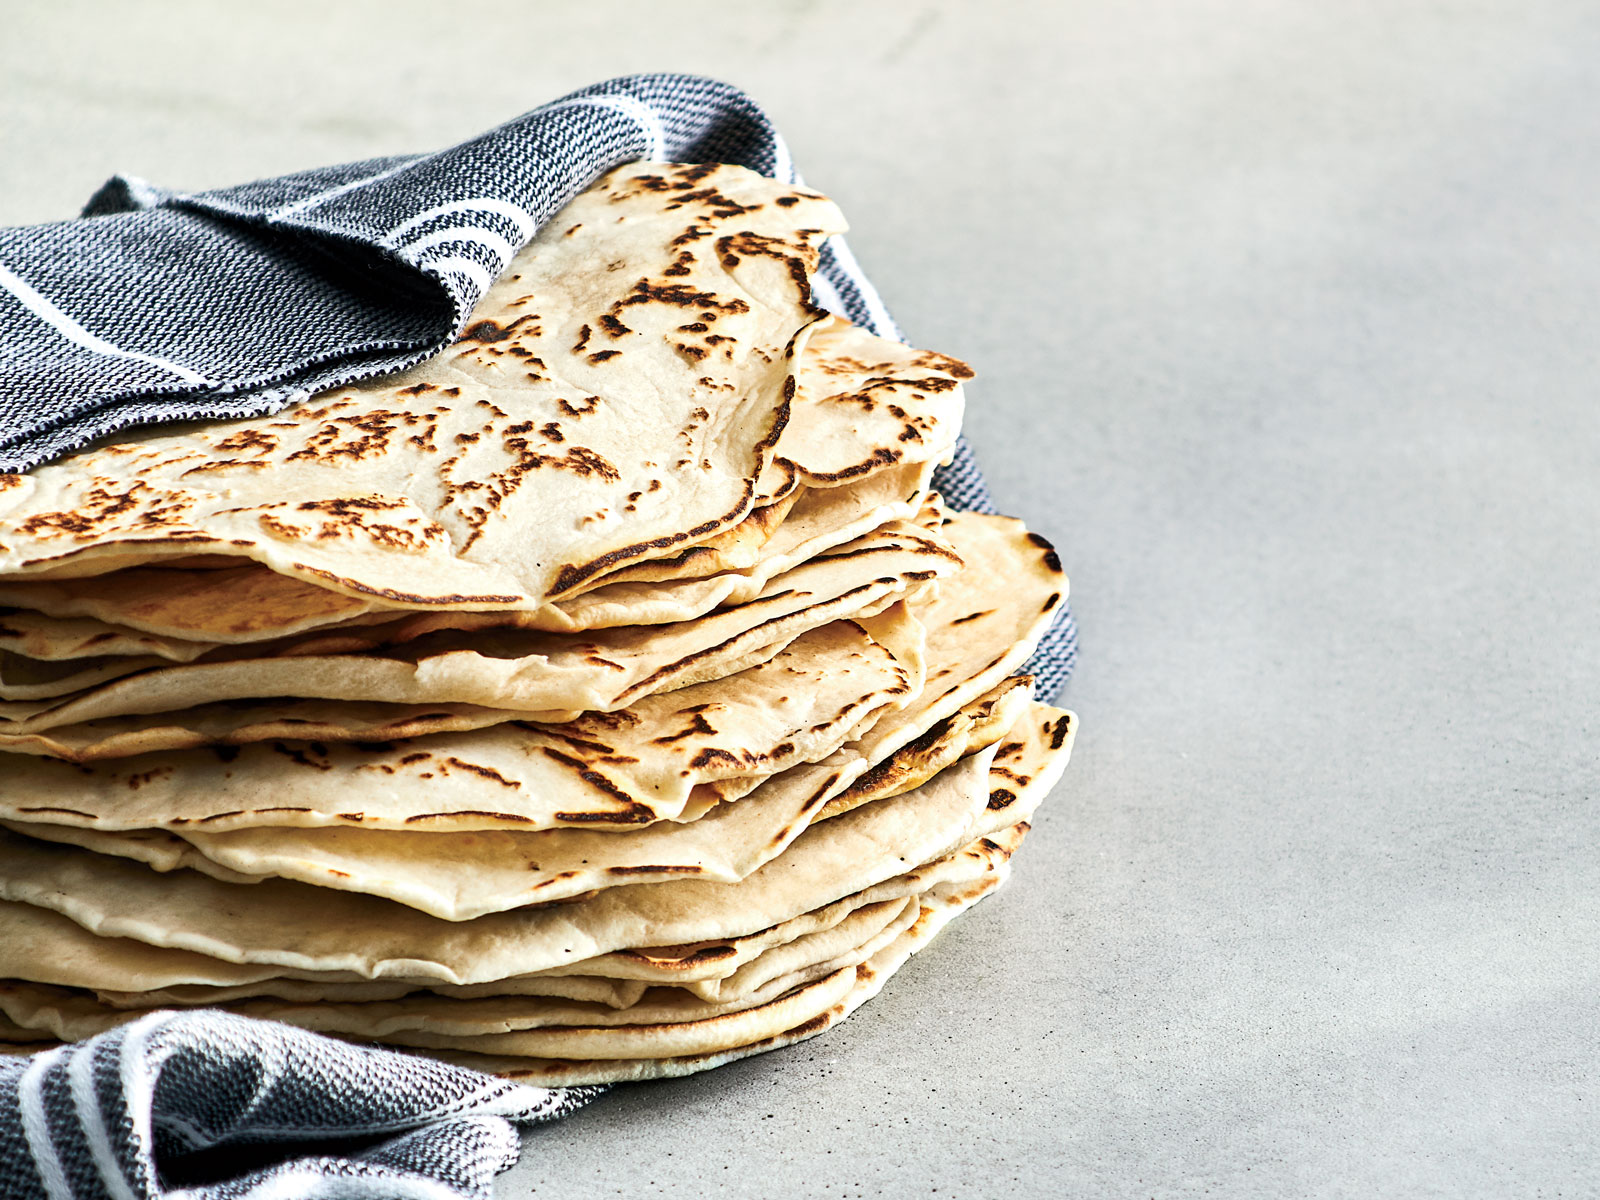 Tex-Mex Flour Tortillas